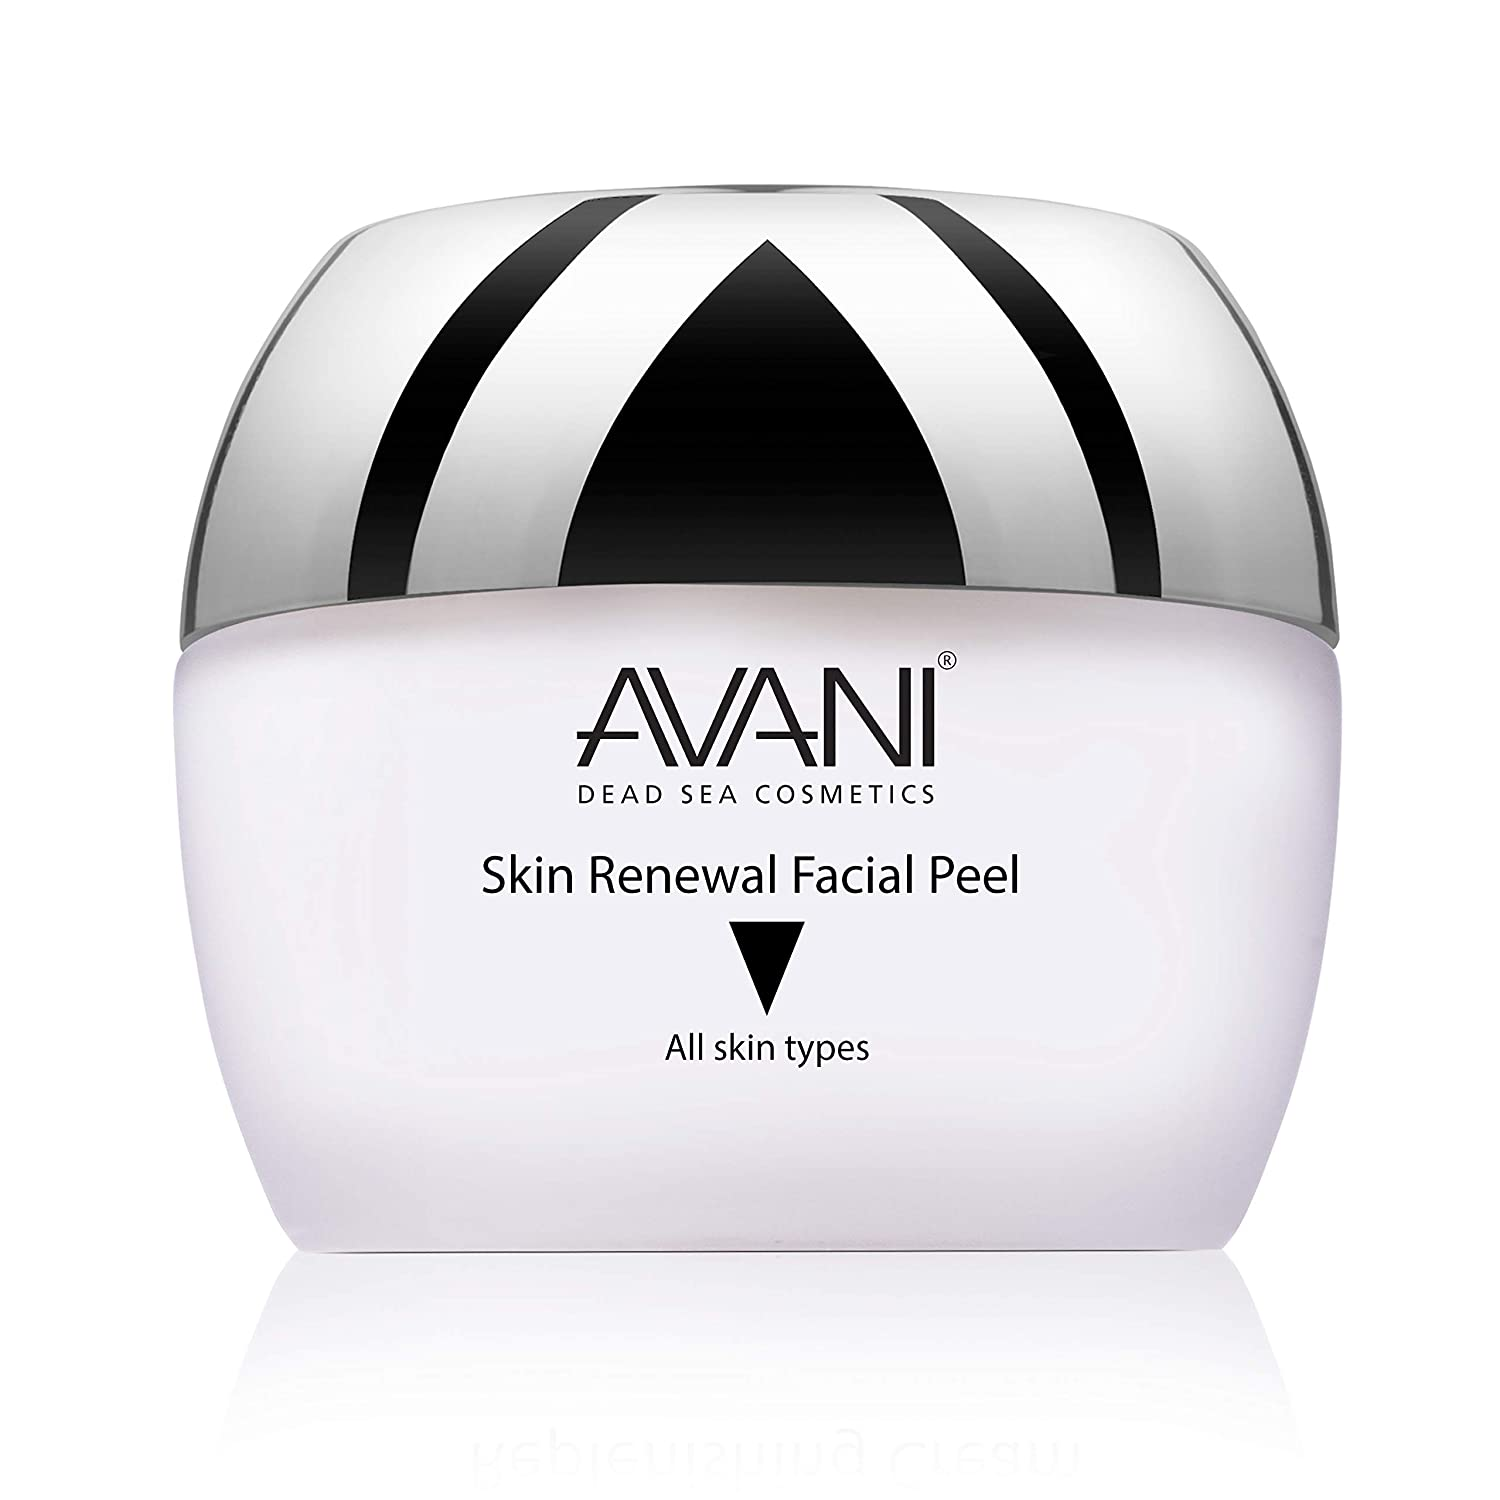 AVANI Classics Skin Renewal Facial Peel | Enriched with Vitamins E & C | Infused with Dead Sea Minerals - 1.7 fl. oz. (Single): Beauty